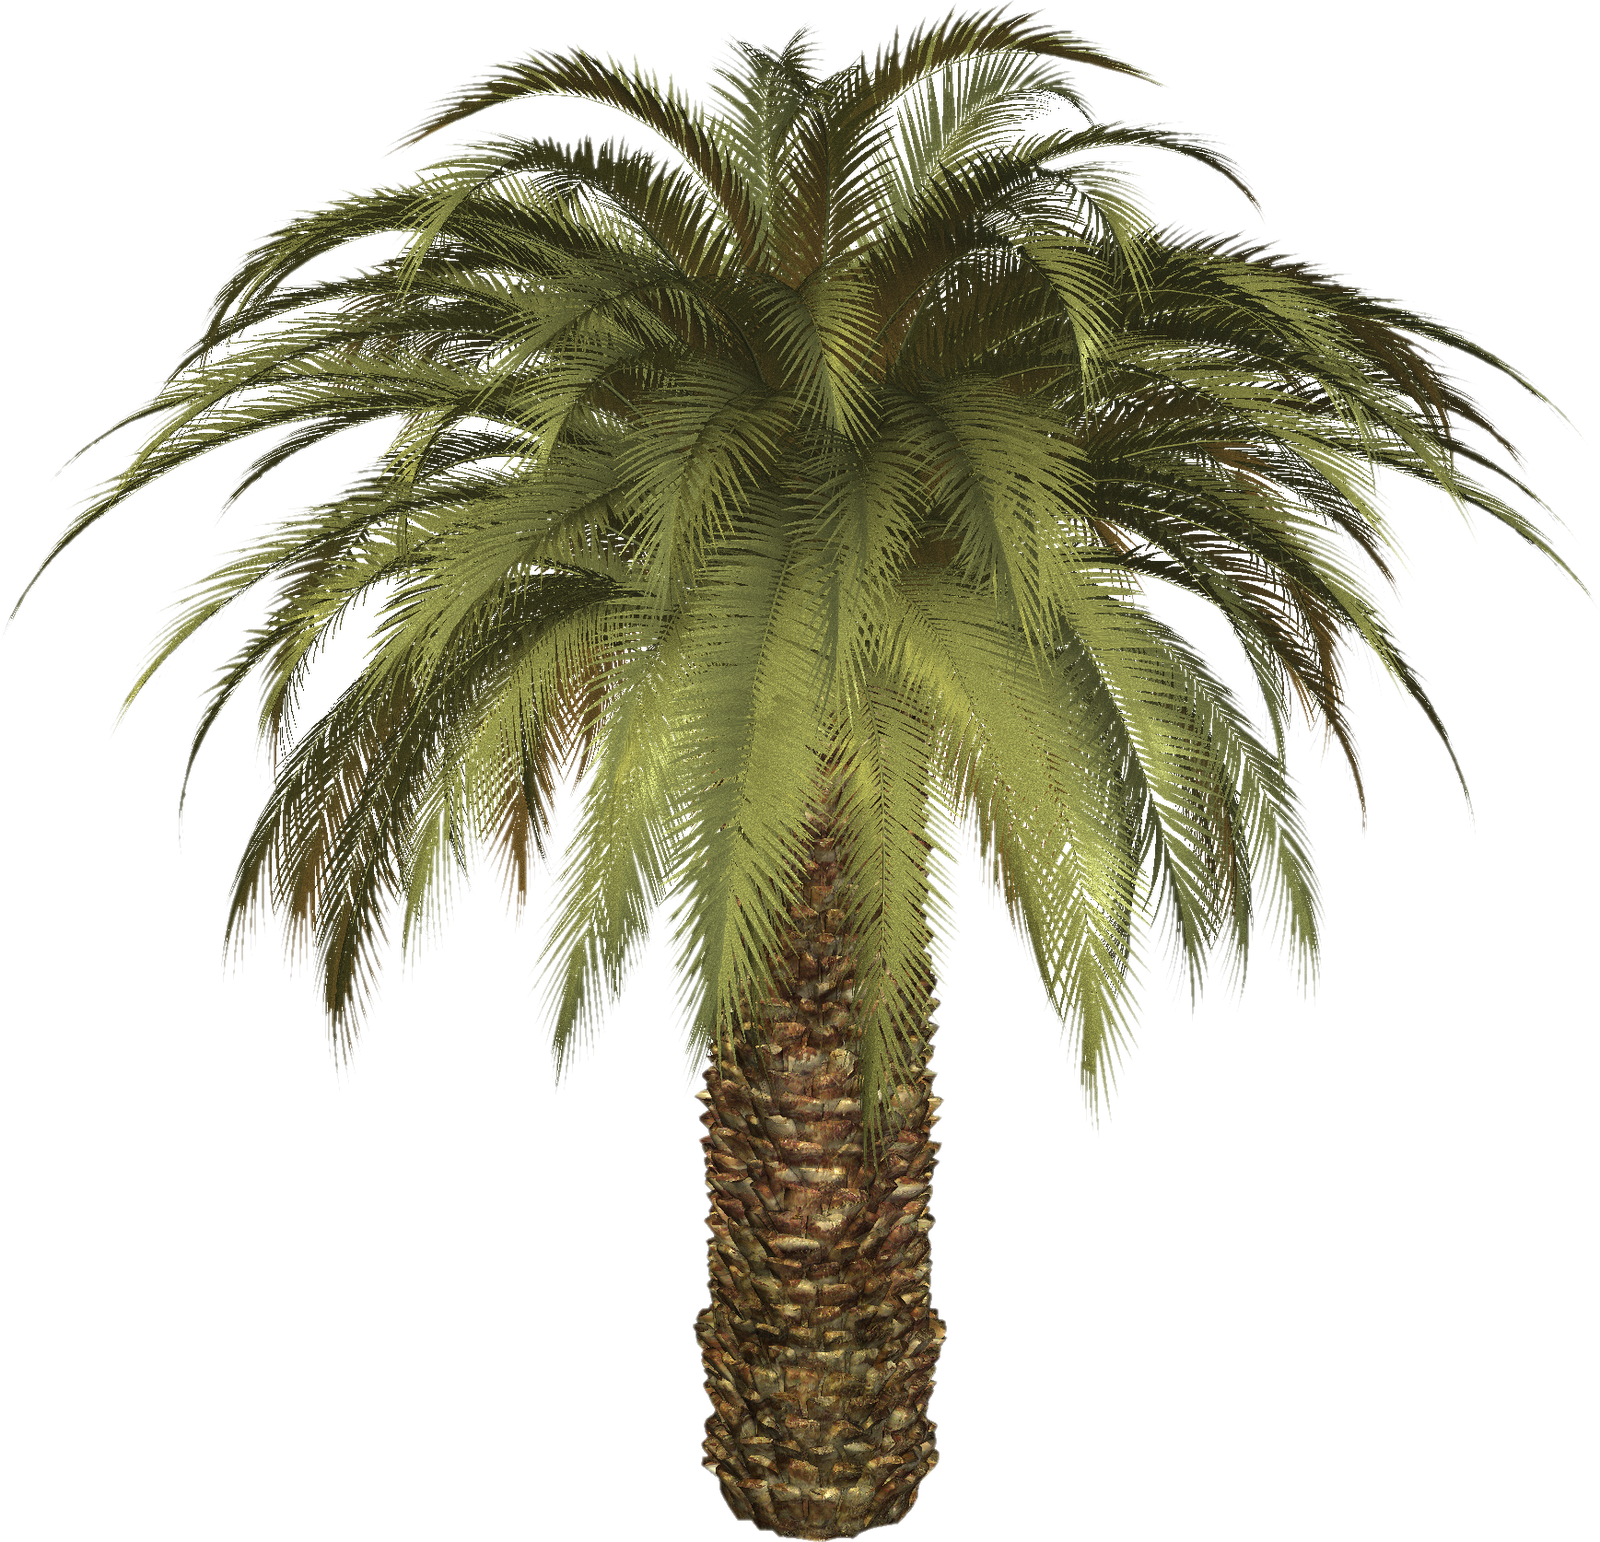 Png Format Images Of Palm Tree image #31887